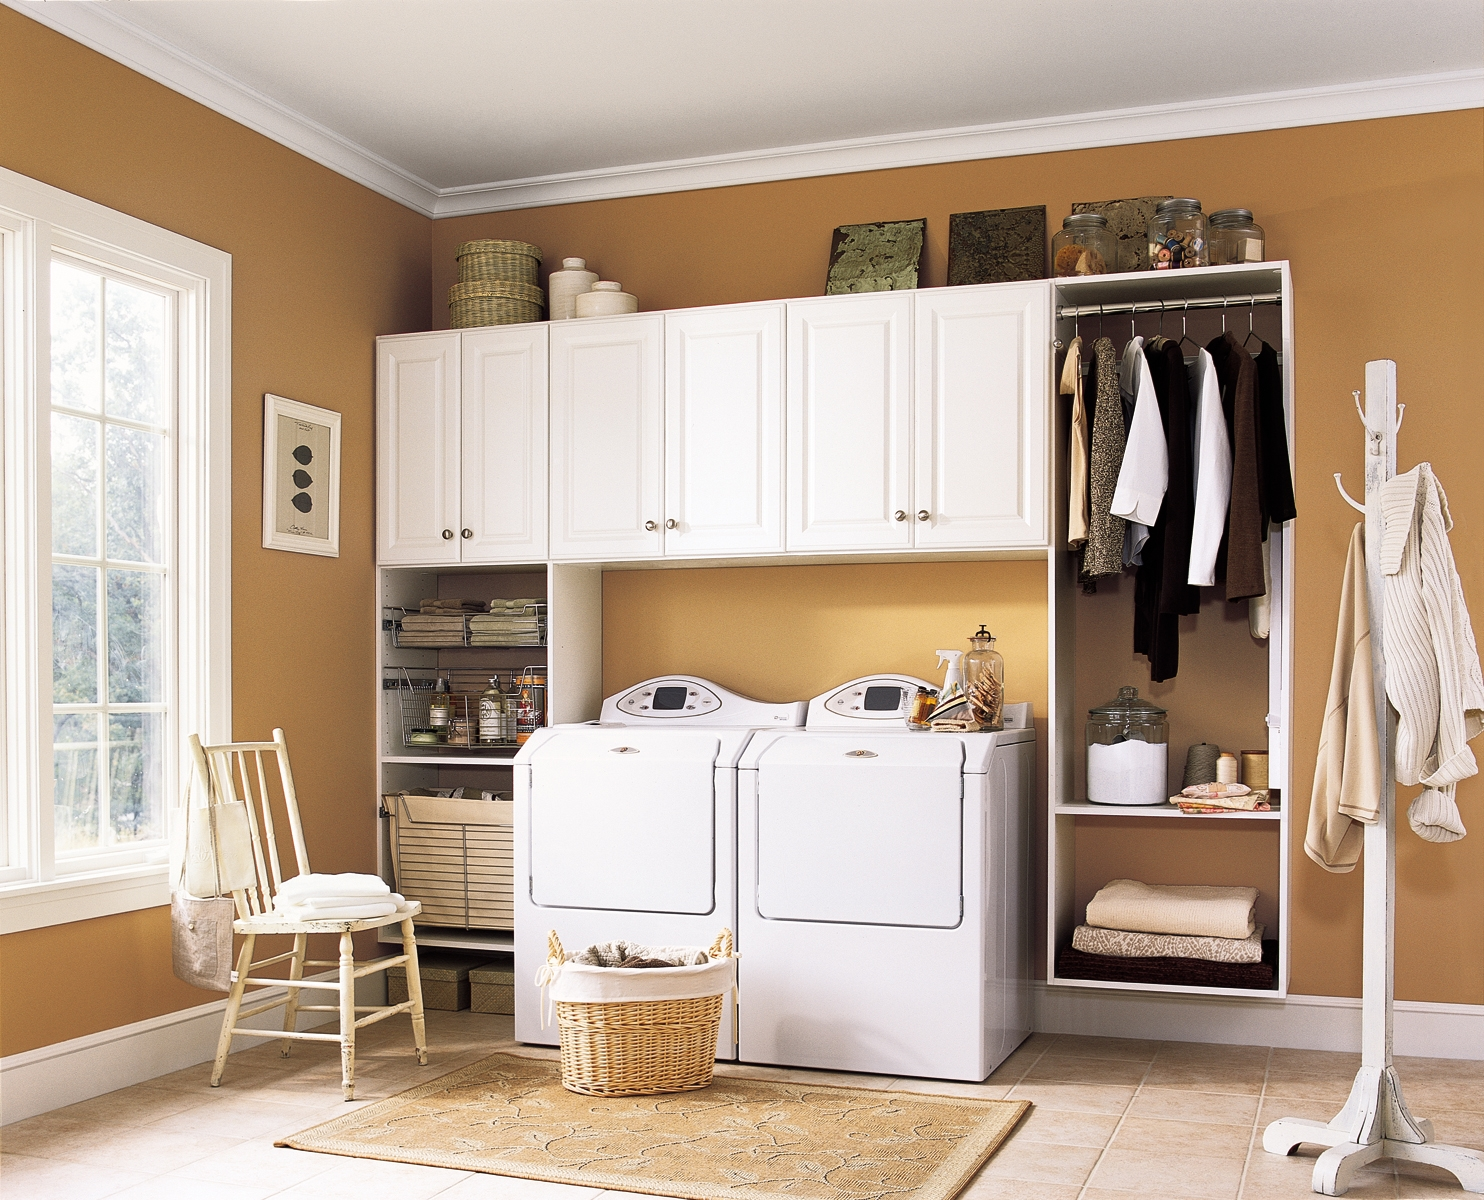 Excellent Laundry Room Storage 1484 x 1200 · 1398 kB · jpeg